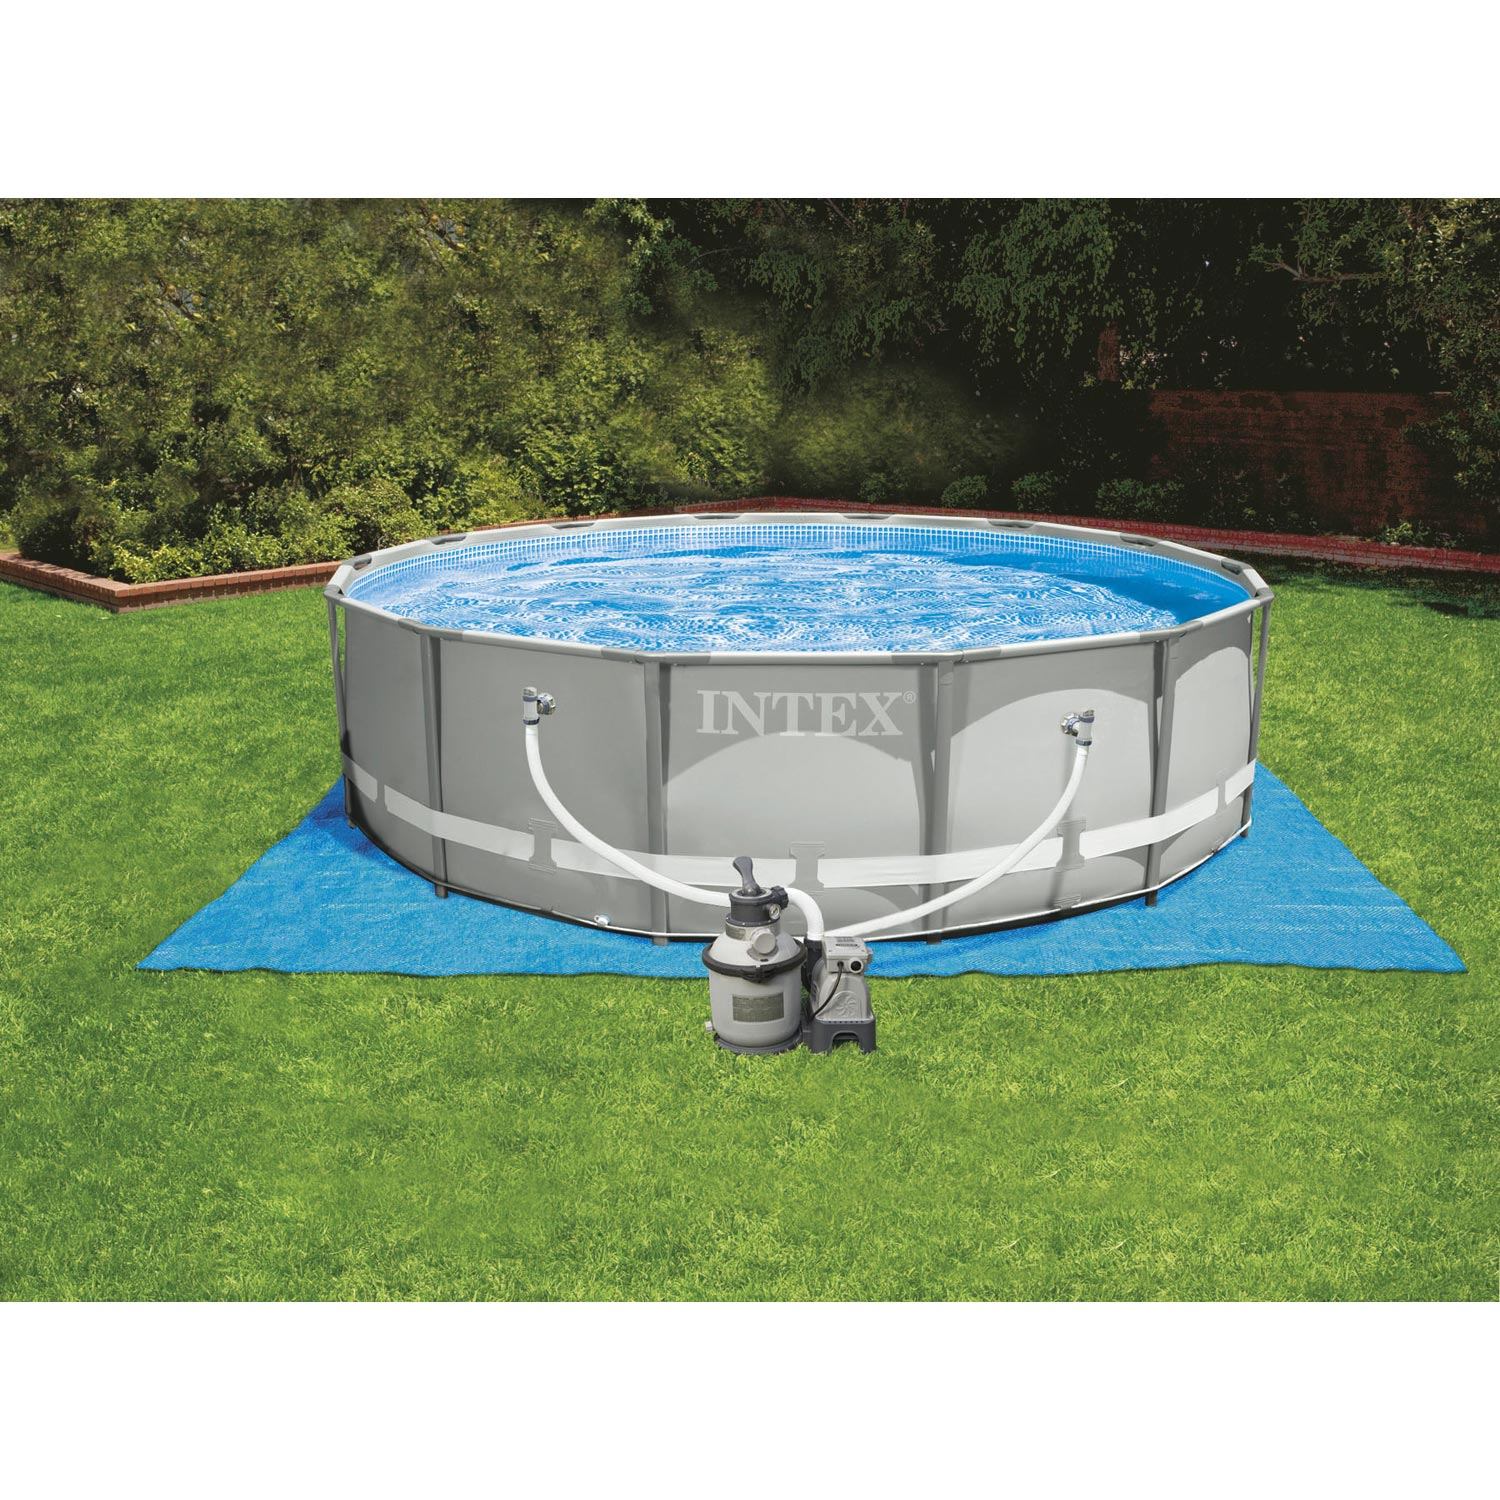 Piscine hors sol autoportante tubulaire ultra frame intex for Piscine exterieure hors sol